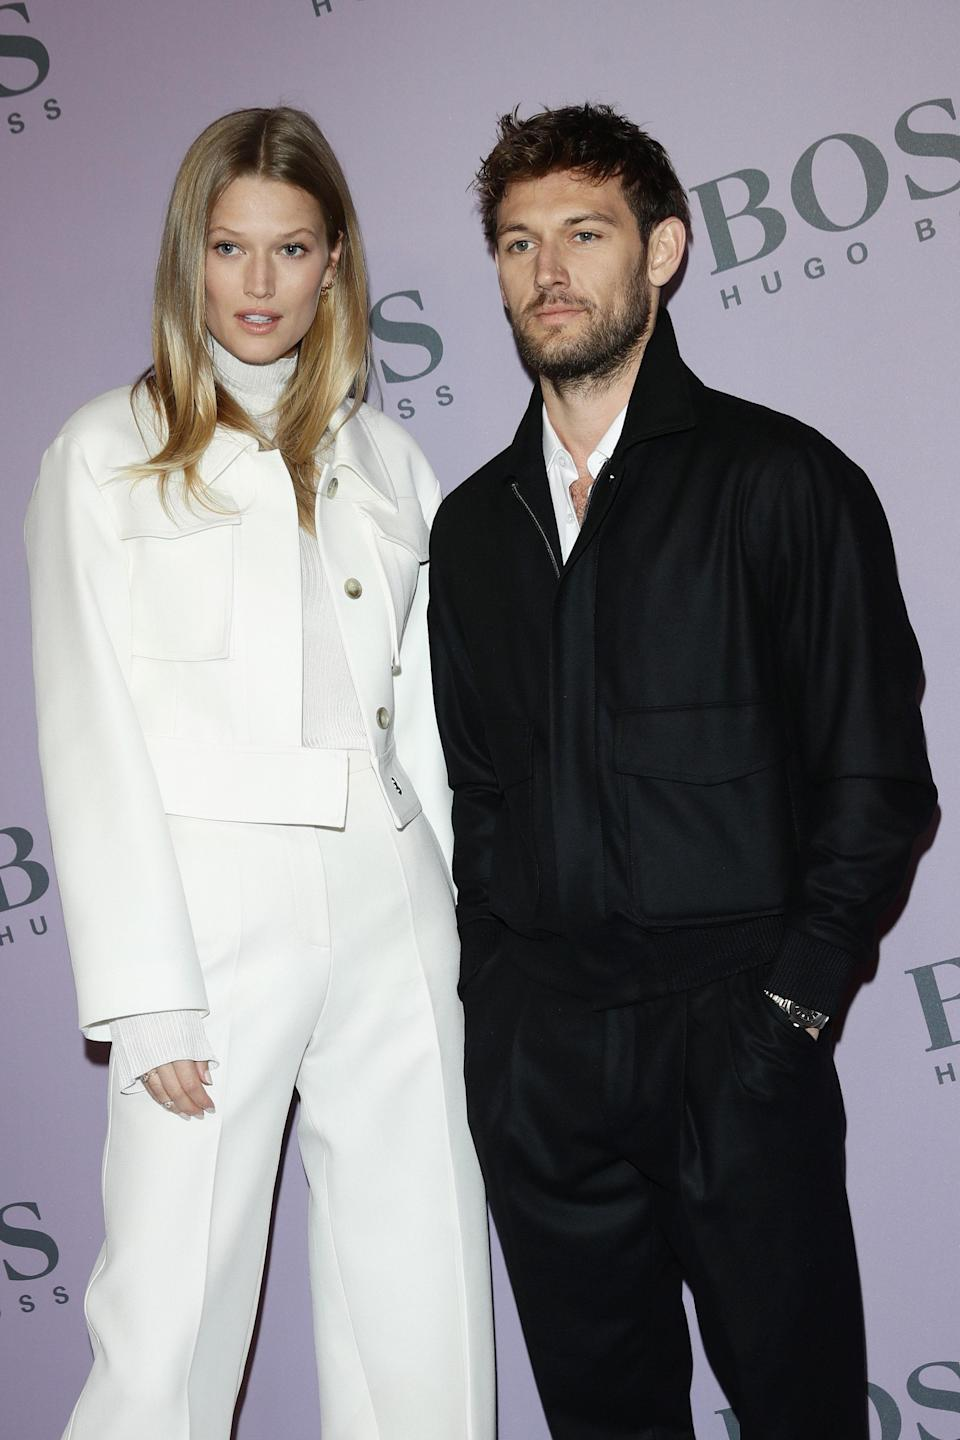 """<em>Magic Mike</em> star Alex Pettyfer and his supermodel fiancée, Toni Garrn, are now husband and wife. Pettyfer announced the happy news <a href=""""https://www.instagram.com/p/CF7k-f6pFMz/"""" rel=""""nofollow noopener"""" target=""""_blank"""" data-ylk=""""slk:on his Instagram"""" class=""""link rapid-noclick-resp"""">on his Instagram</a> with a photo showing off their wedding bands and the caption """"Mr. & Mrs Pettyfer."""" In <a href=""""https://www.instagram.com/p/CF7k-Dhj8yb/"""" rel=""""nofollow noopener"""" target=""""_blank"""" data-ylk=""""slk:her own post,"""" class=""""link rapid-noclick-resp"""">her own post,</a> Garrn wrote, """"Now you really get to call me wifey."""""""